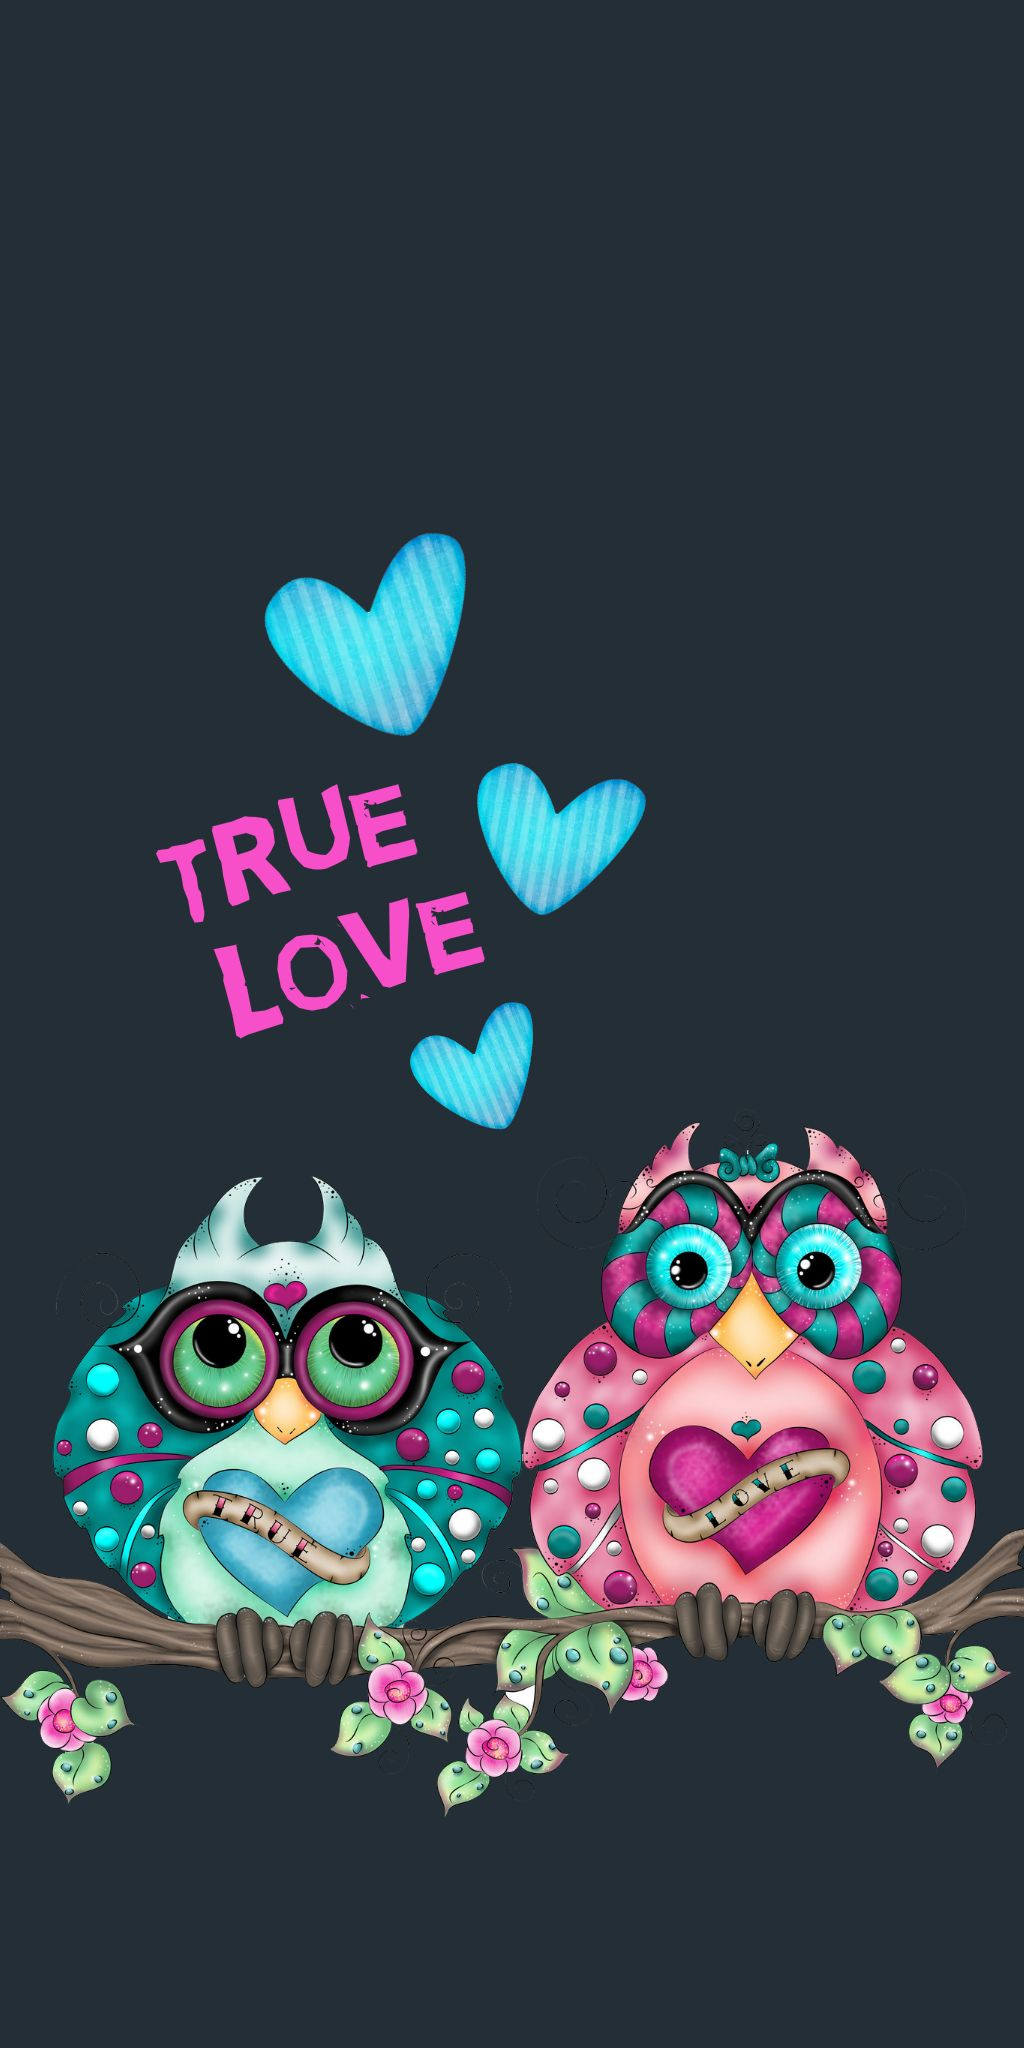 True Love Cute Owls Wallpaper Cute Owls Wallpaper Owl Wallpaper Cute Owl